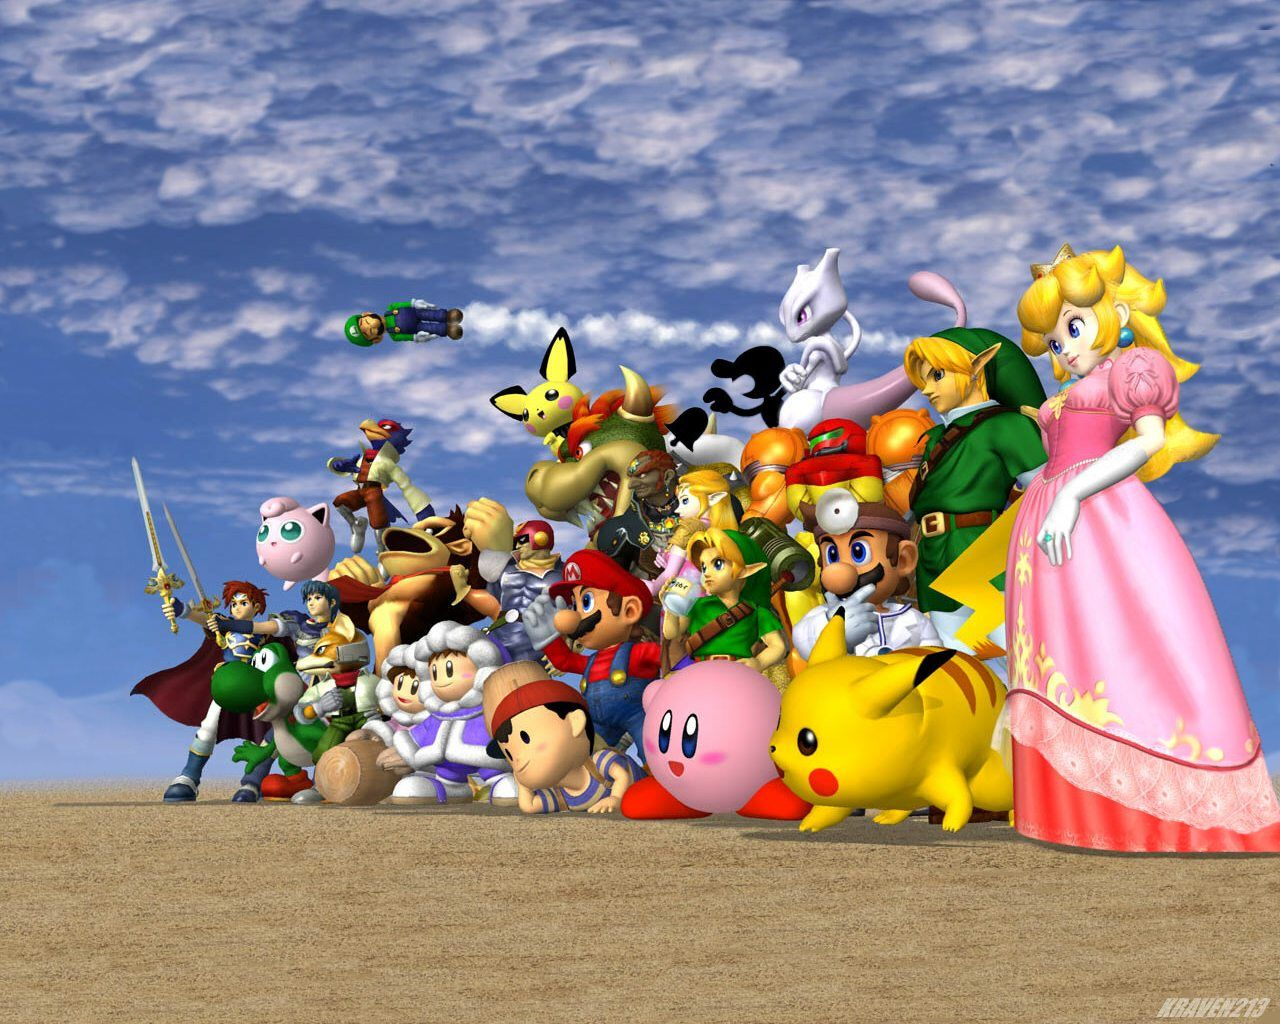 Melee Iphone Wallpapers Top Free Melee Iphone Backgrounds